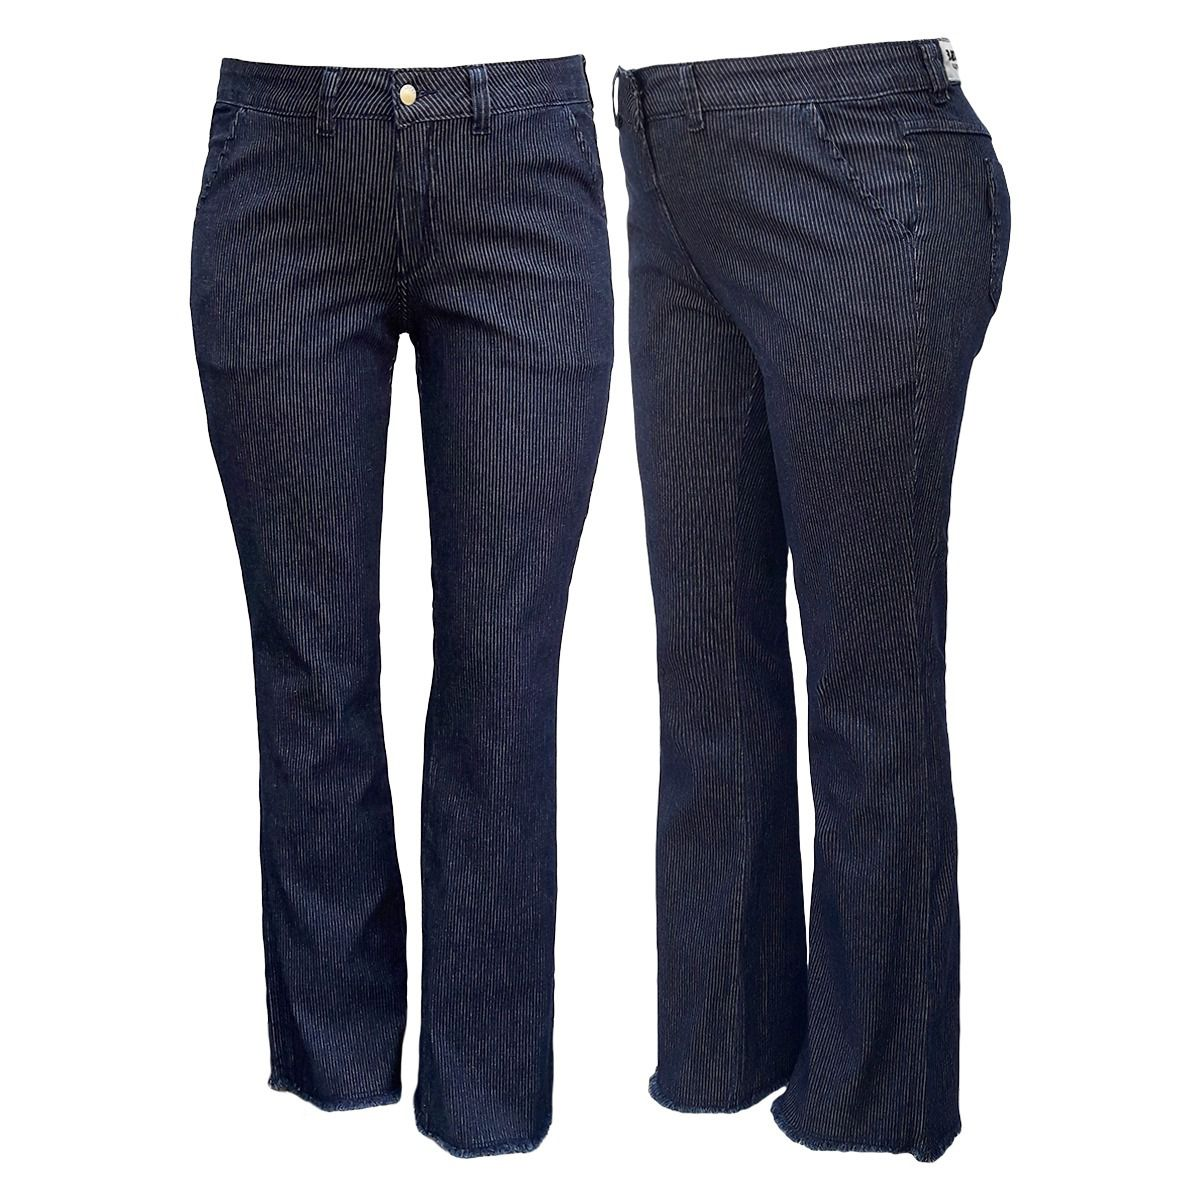 Calça Jeans Feminina Boot Cut Plus Size